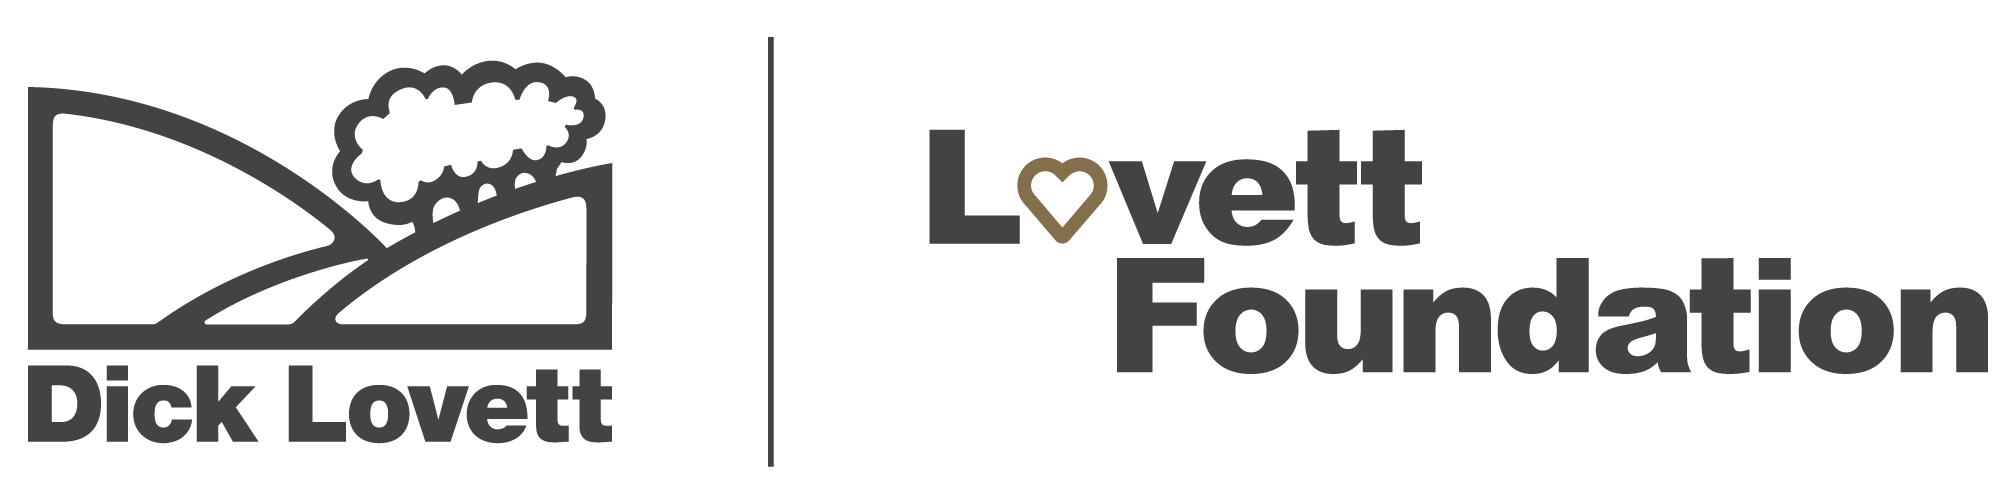 Lovett Foundation Logo with HT Dark